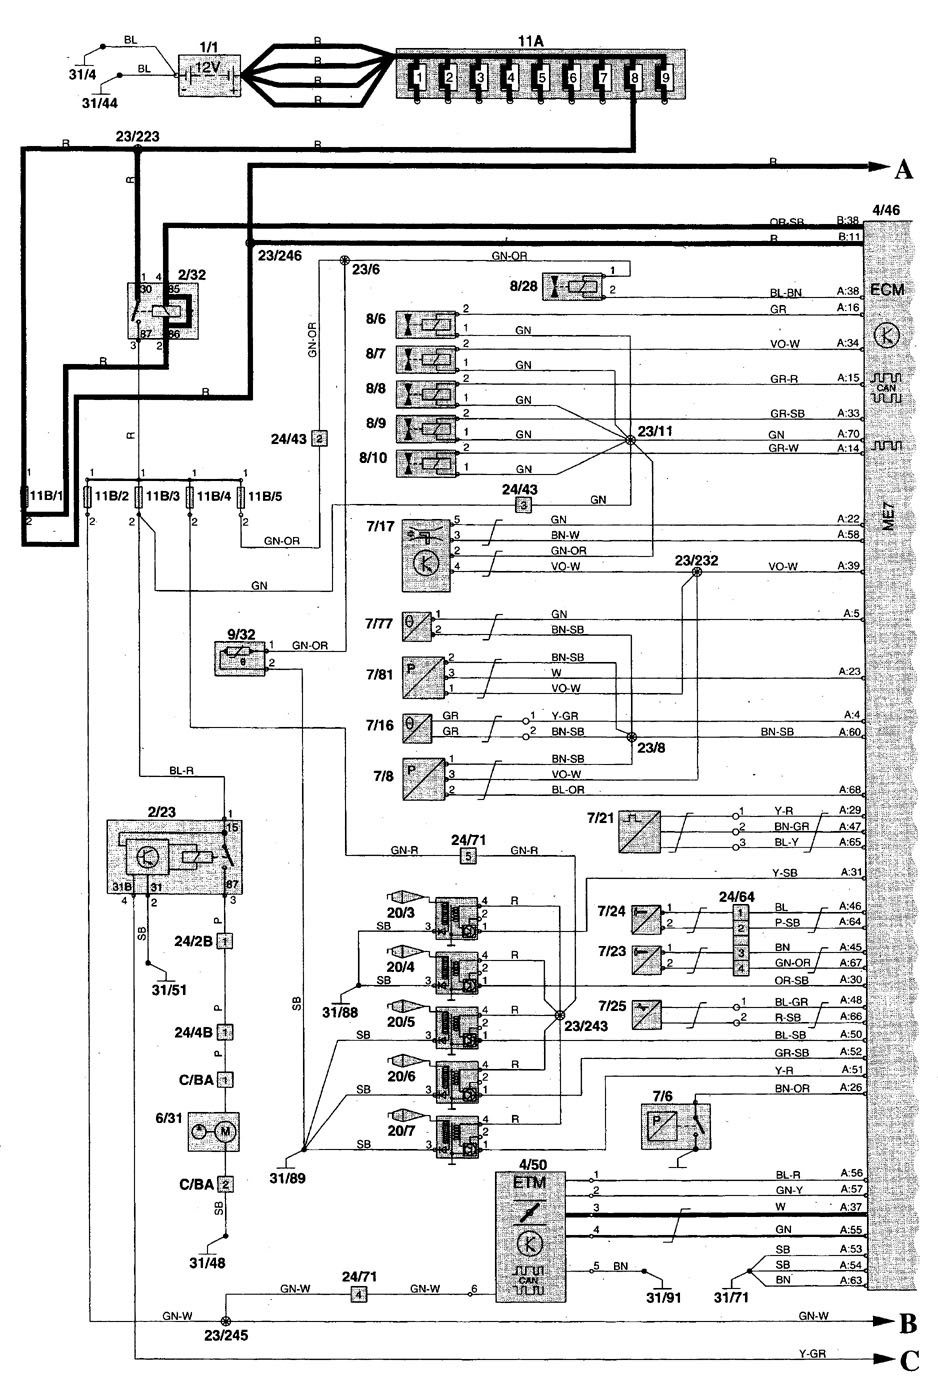 1999 Volvo Wiring Diagram : 25 Wiring Diagram Images